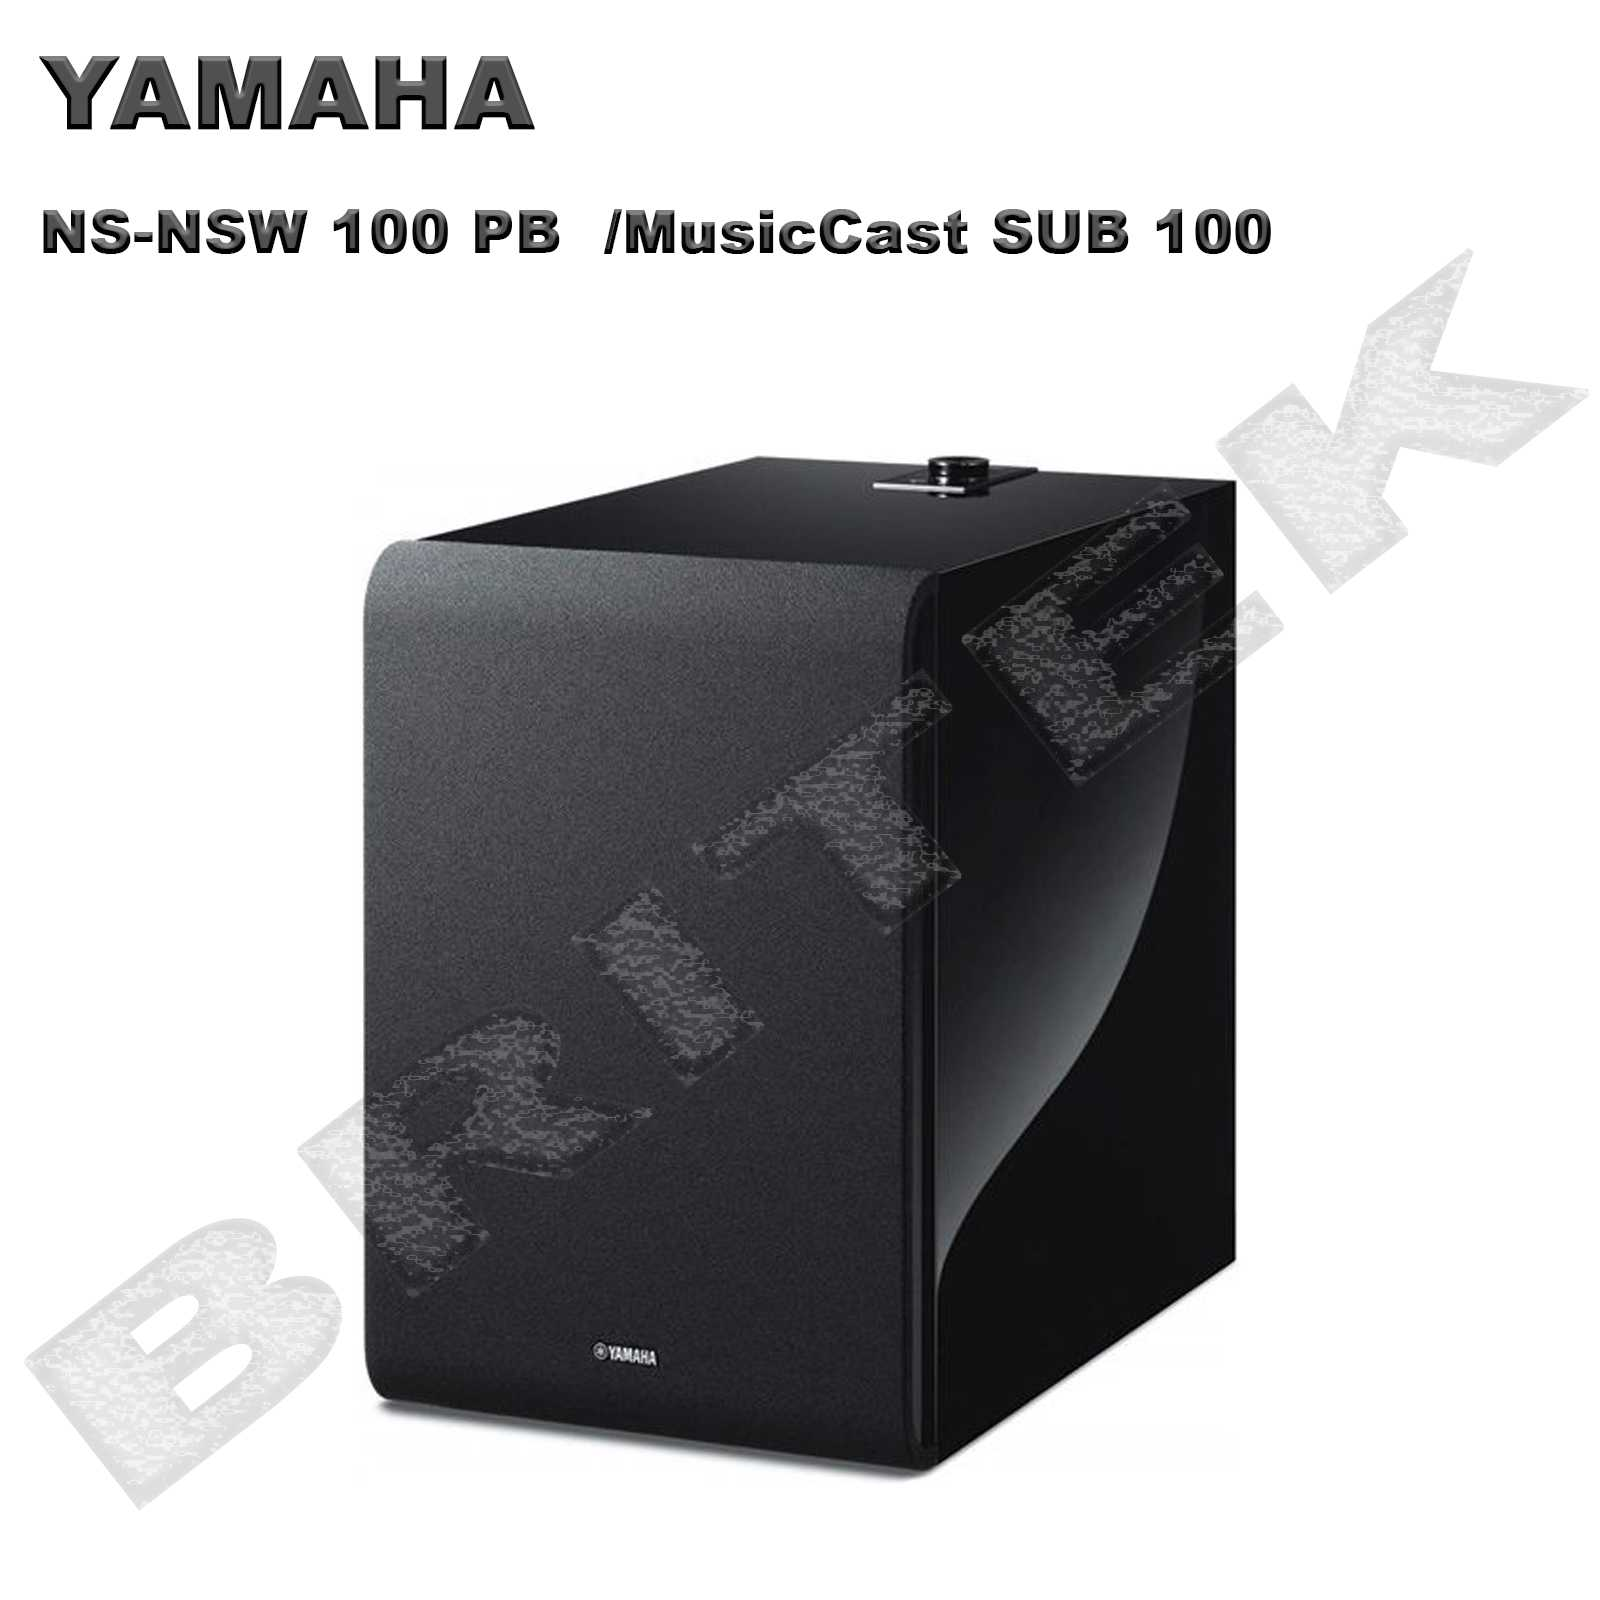 YAMAHA NS-NSW 100